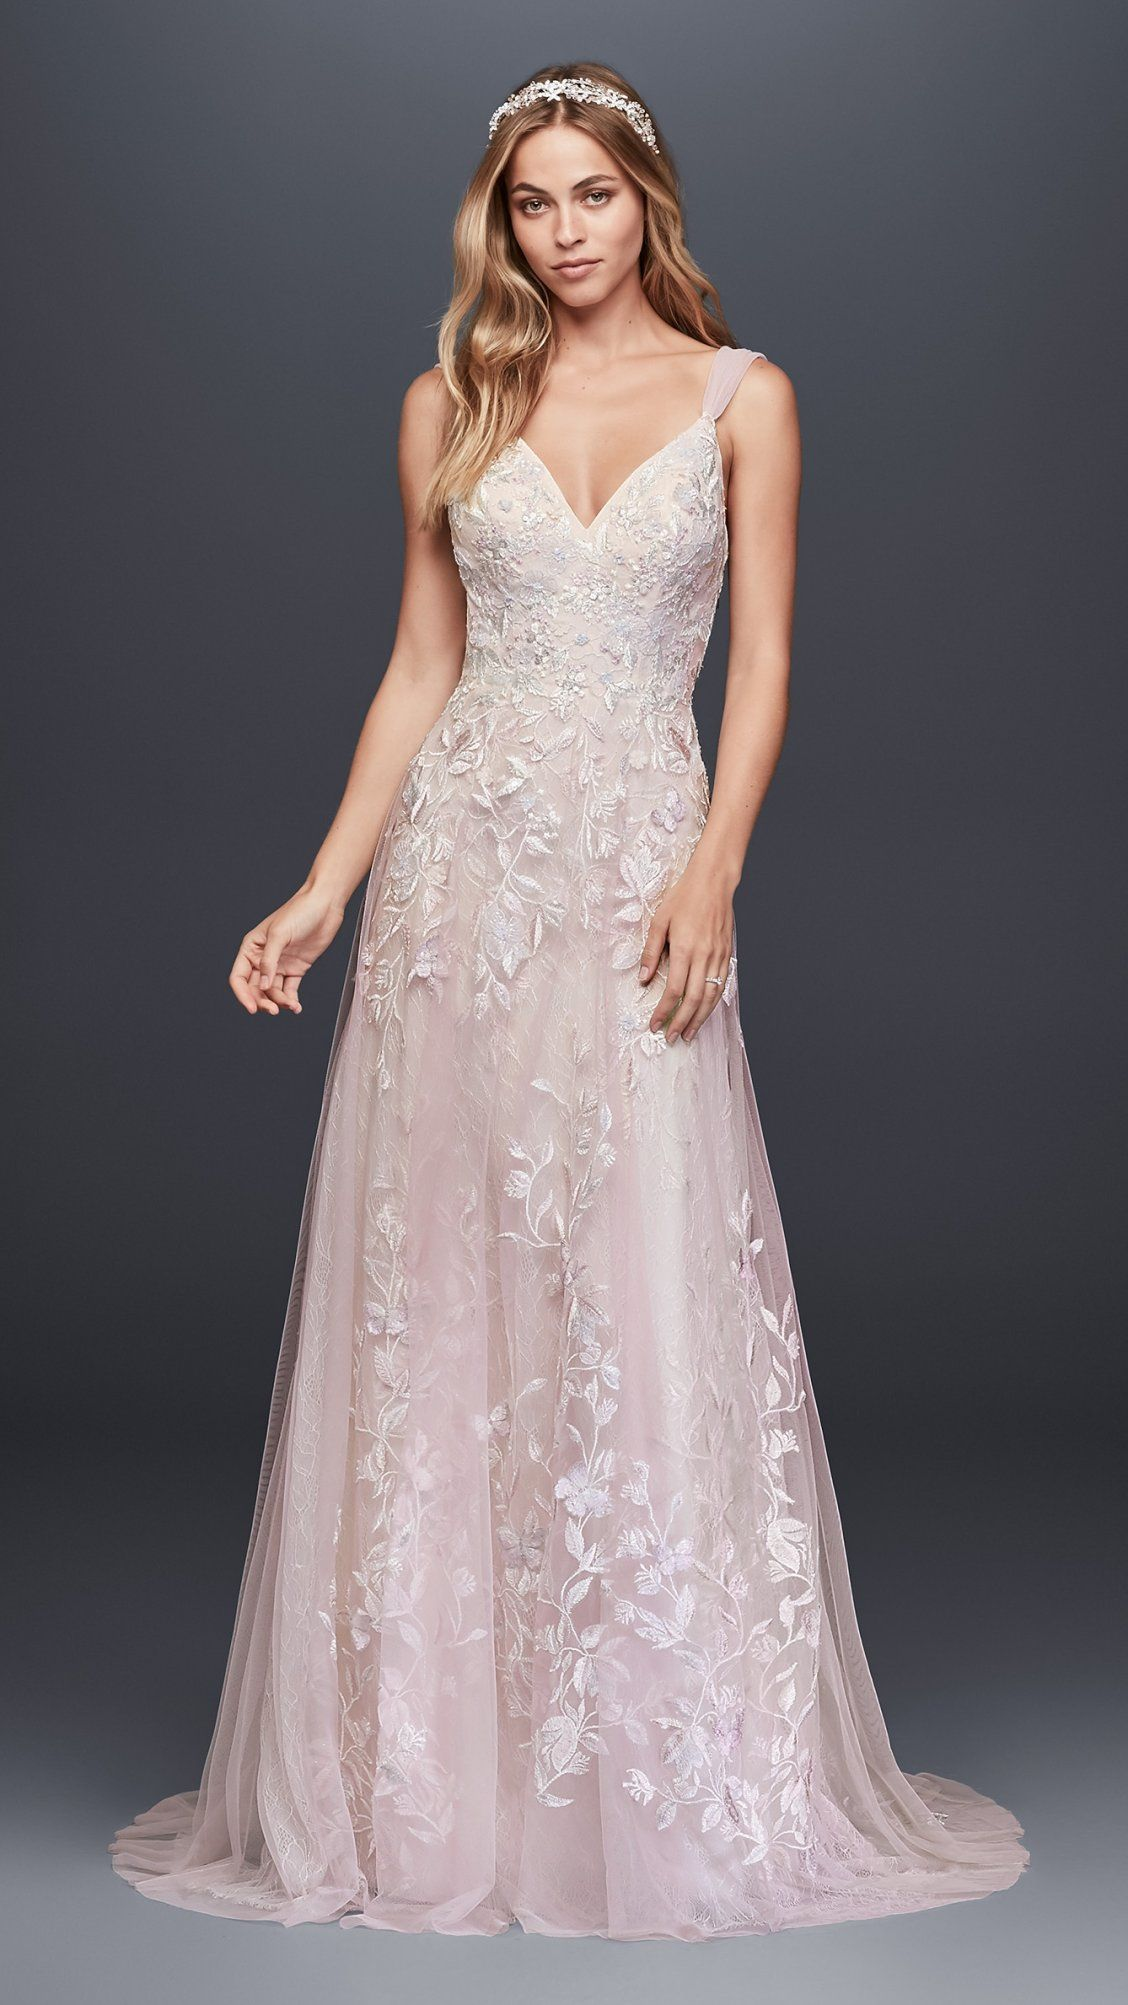 Romantic wedding dress with airy tulle and lace | Pale Pink ...